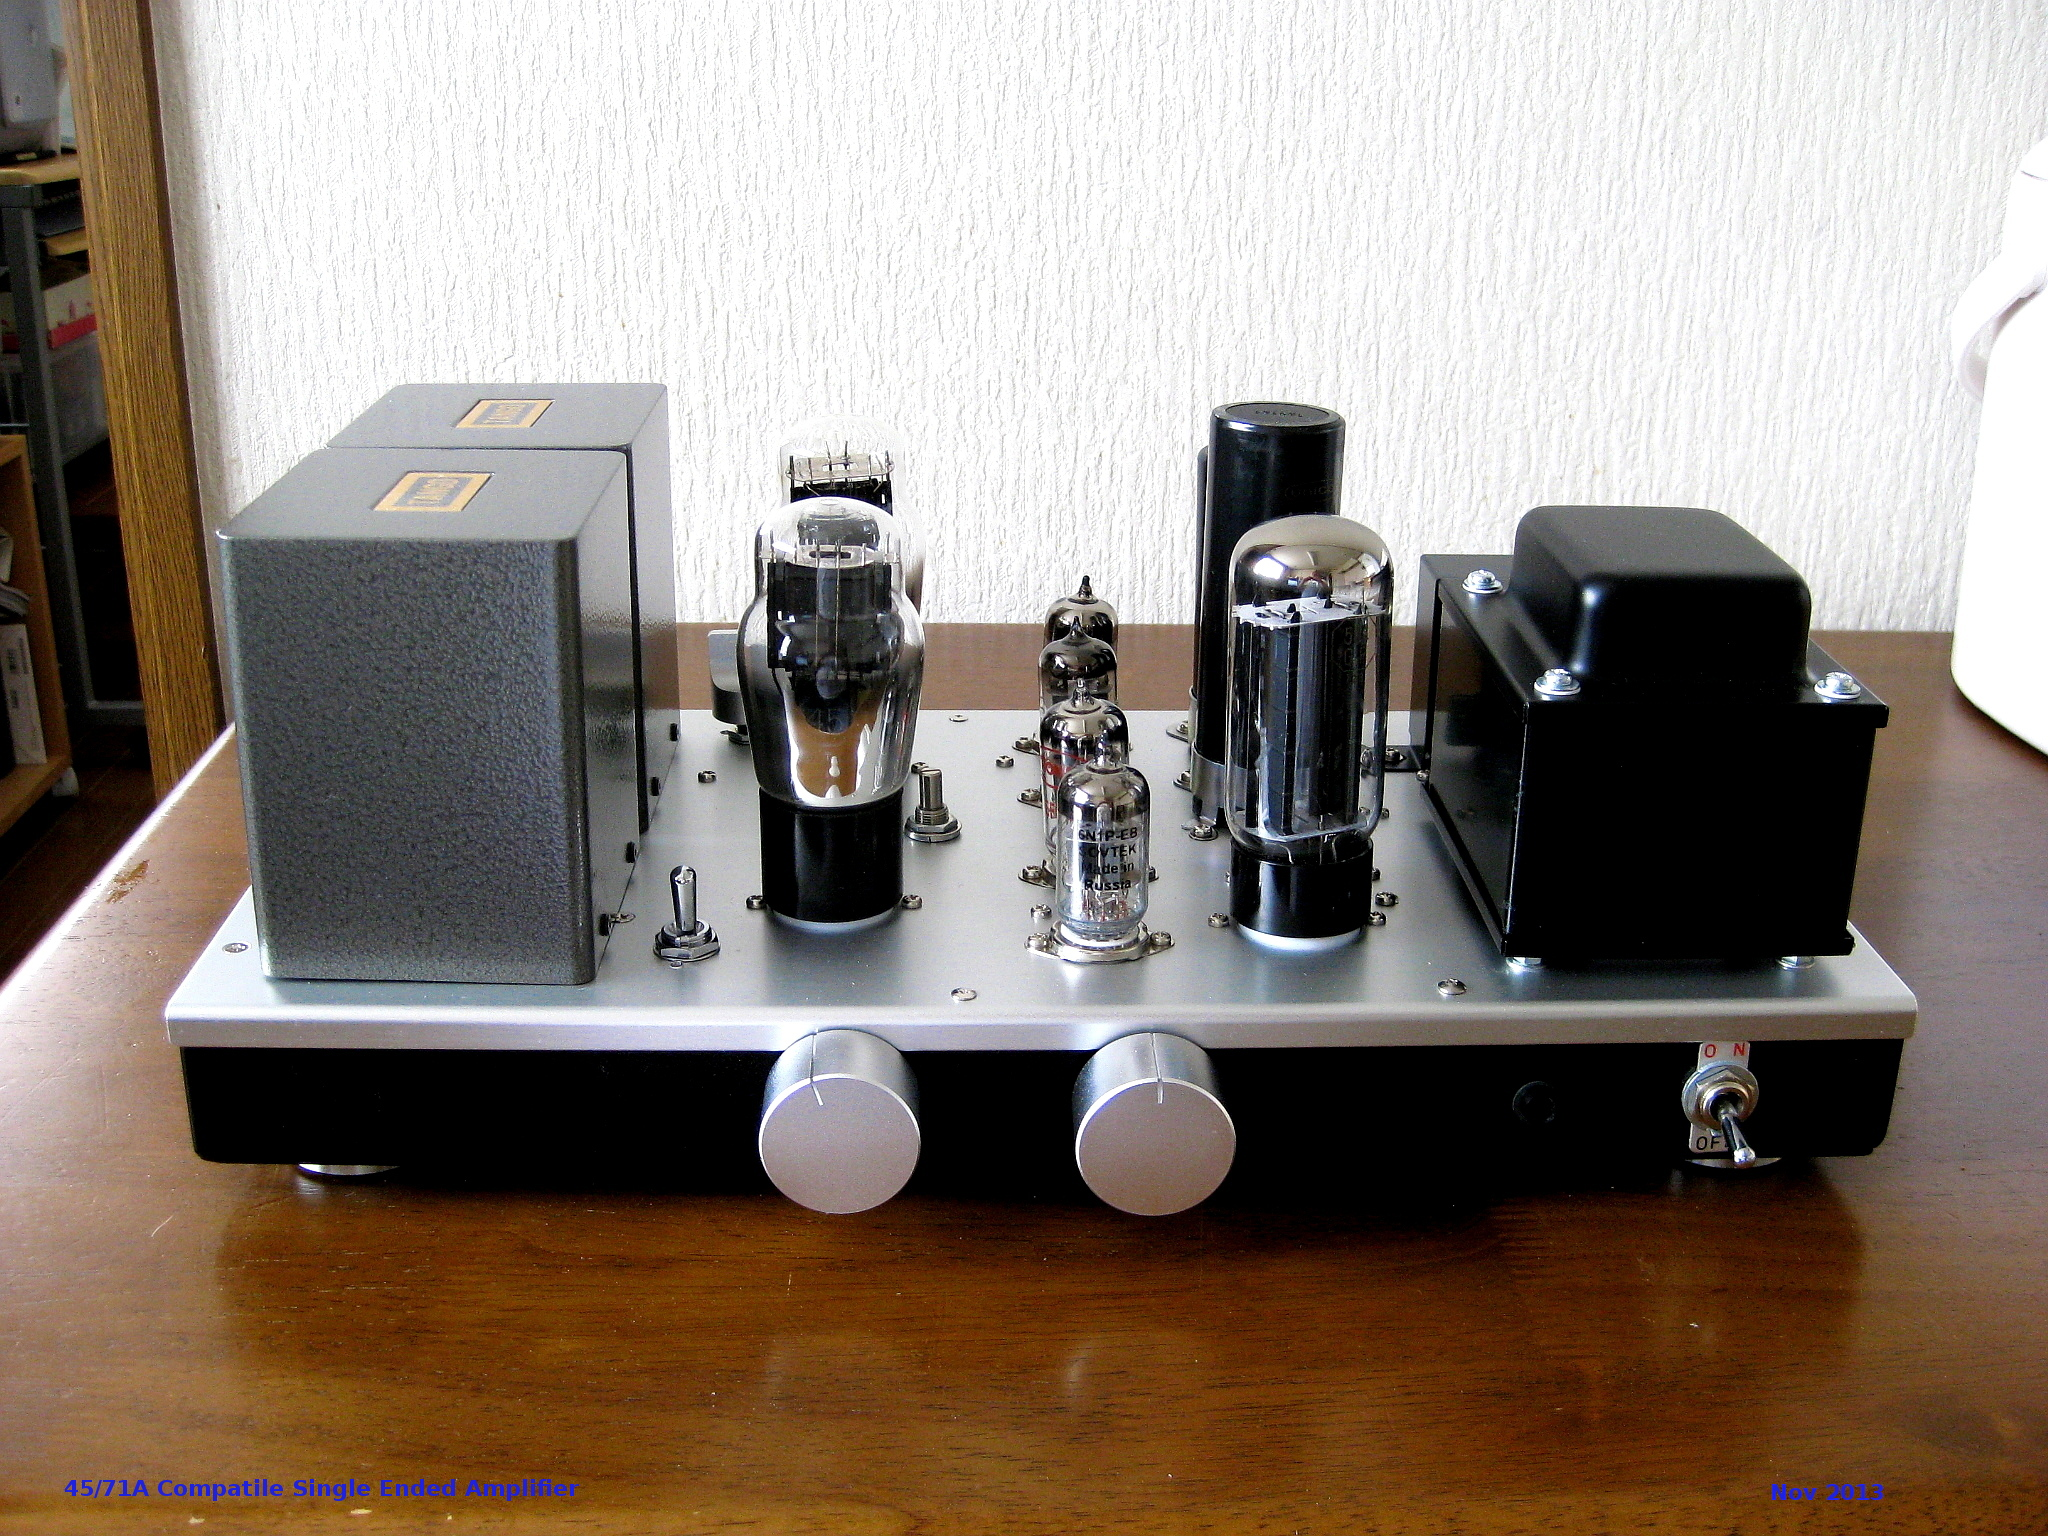 45/71A Single Ended Amplifier 2013